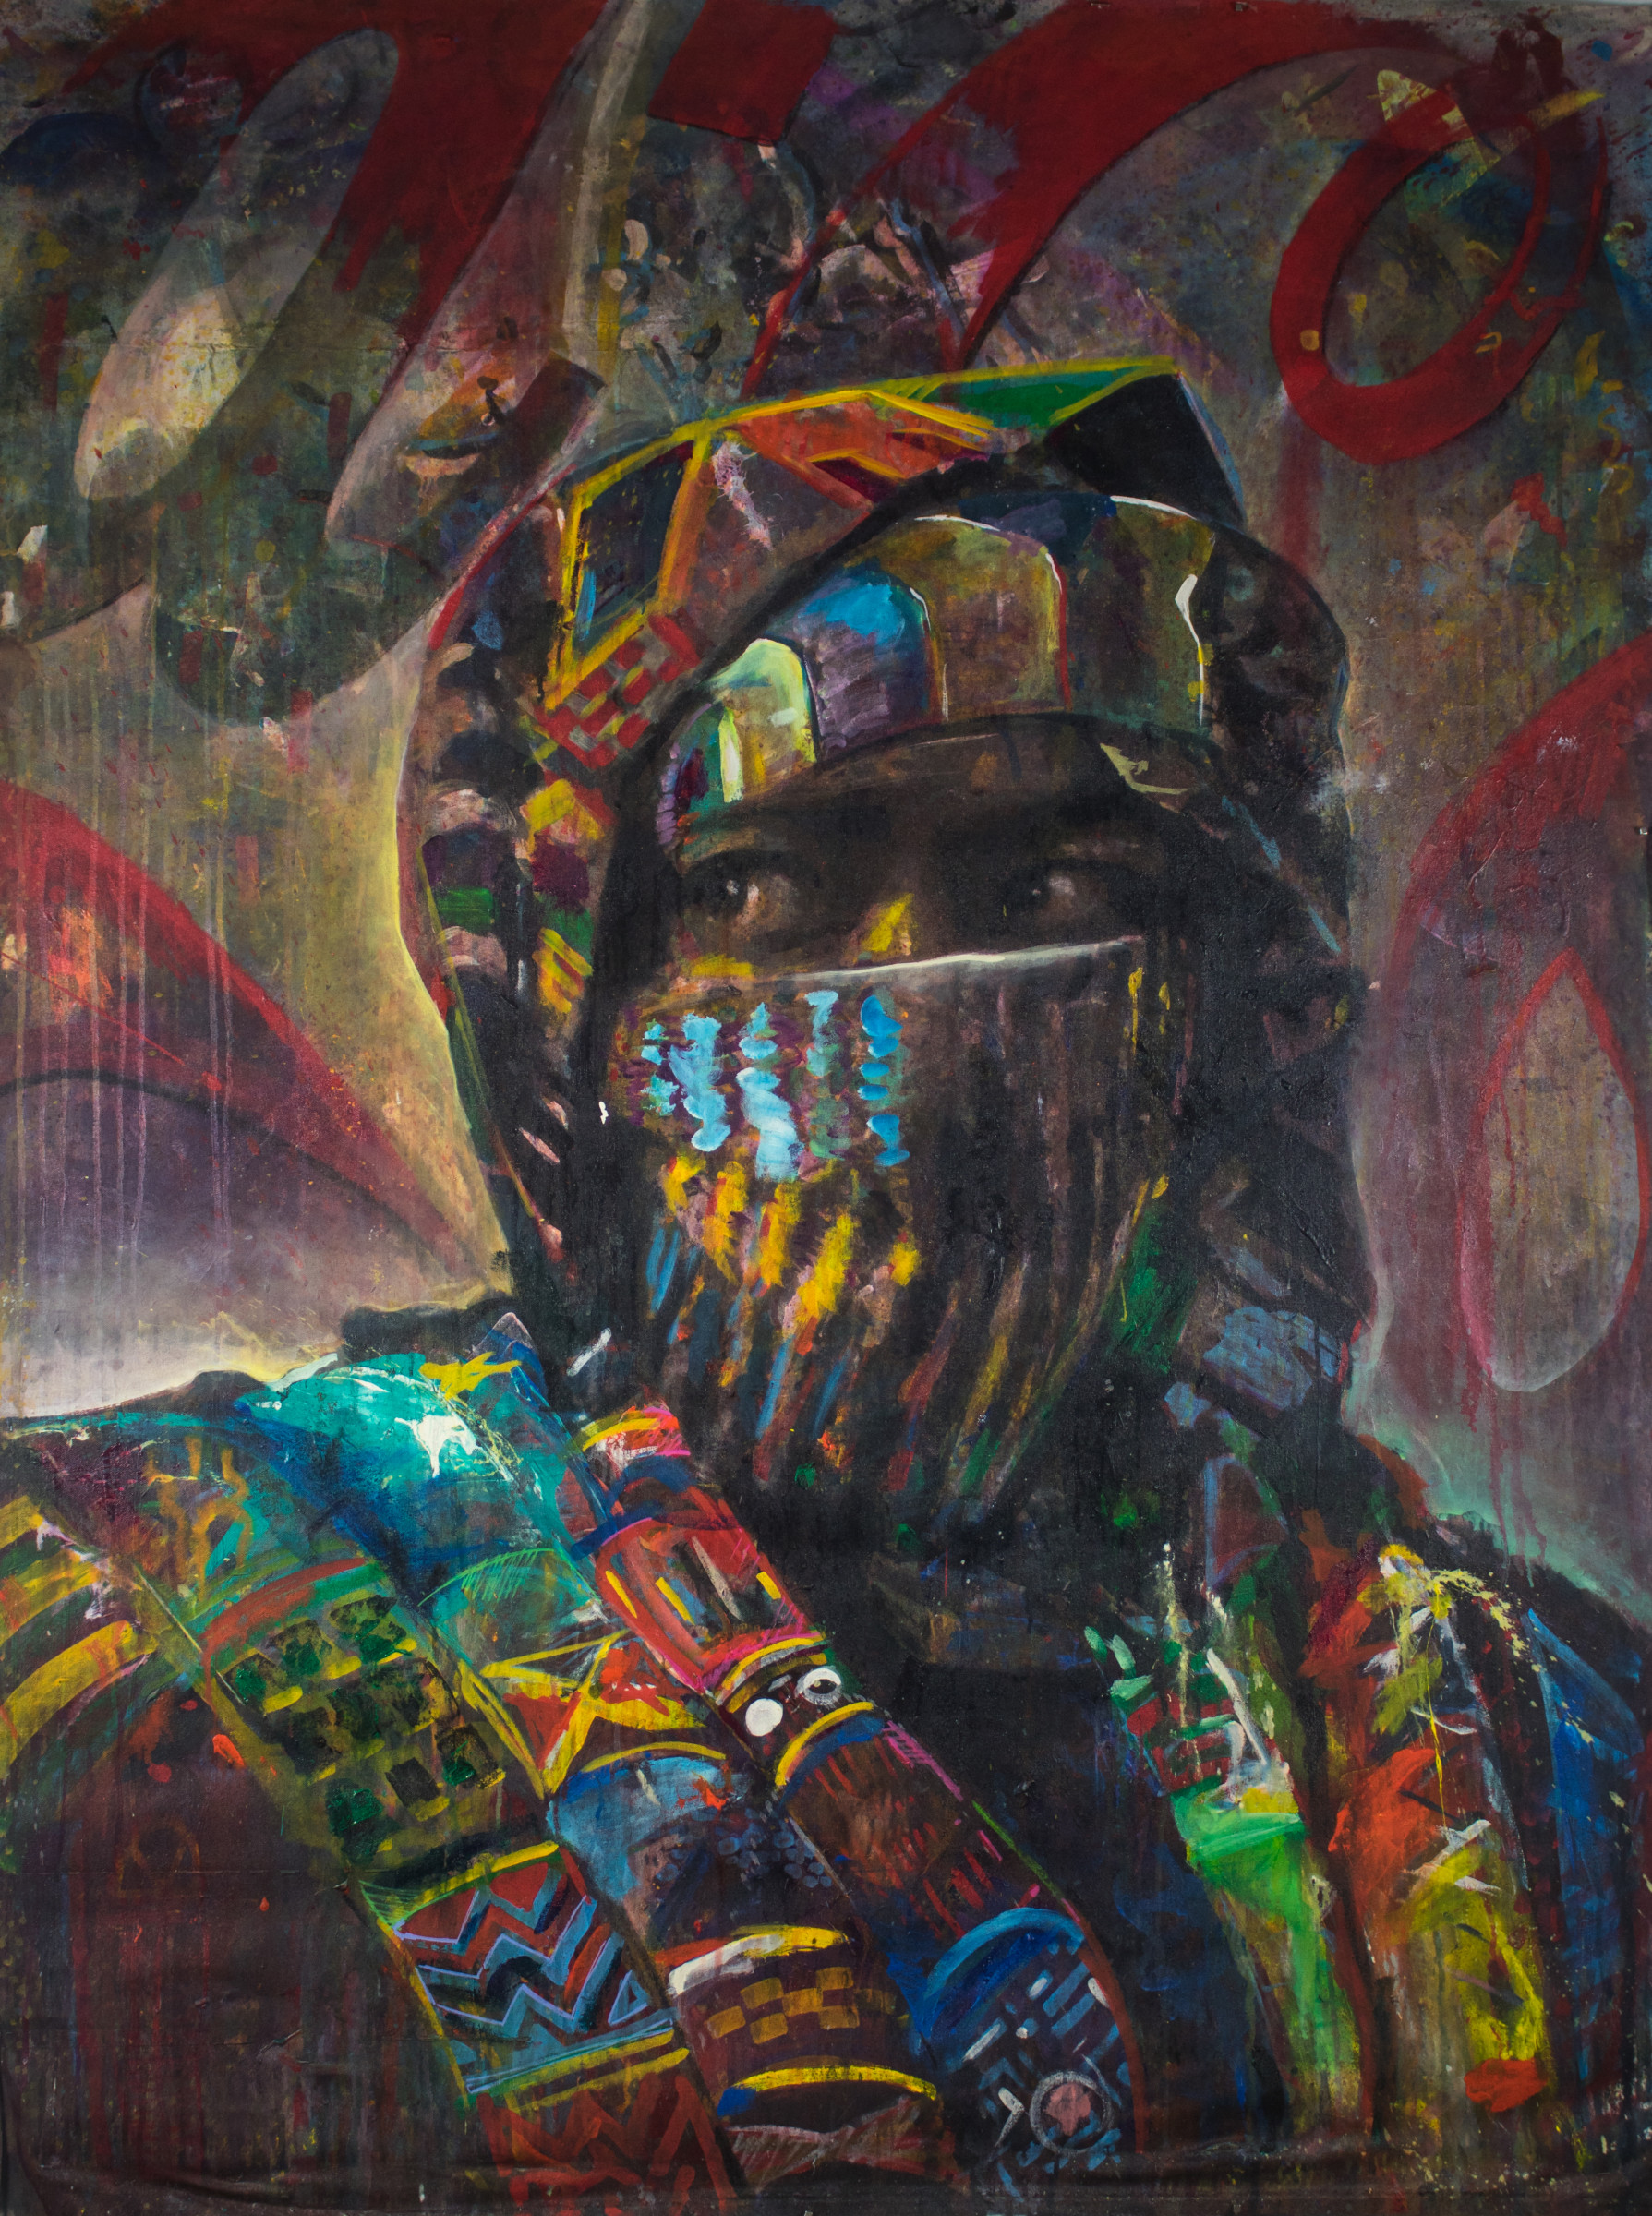 <span class=&#34;link fancybox-details-link&#34;><a href=&#34;/artworks/97-ayo-scott-afro-kente-cola-2014/&#34;>View Detail Page</a></span><div class=&#34;artist&#34;><strong>Ayo Scott</strong></div> <div class=&#34;title&#34;><em>Afro-Kente Cola</em>, 2014</div> <div class=&#34;medium&#34;>Digital Drawing and Acrylic</div> <div class=&#34;dimensions&#34;>64 x 47 in<br /> 162.6 x 119.4 cm</div><div class=&#34;price&#34;>$4,000.00</div><div class=&#34;copyright_line&#34;>Copyright The Artist</div>